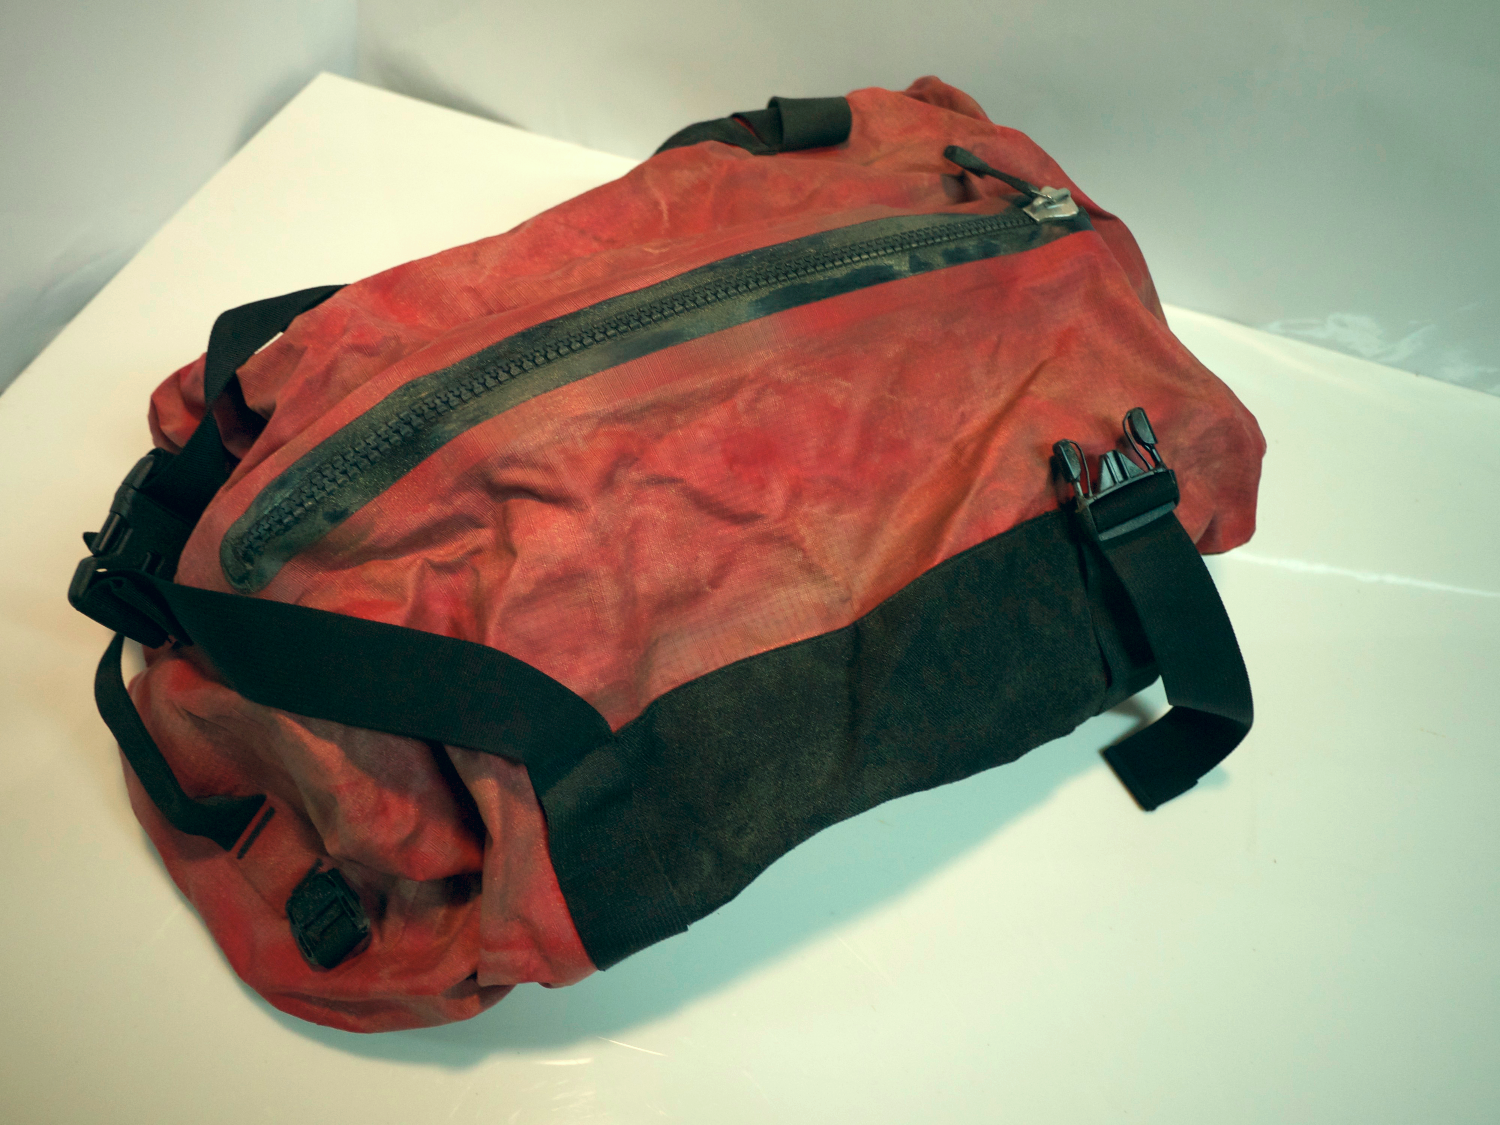 Red duffle bag (rescue)